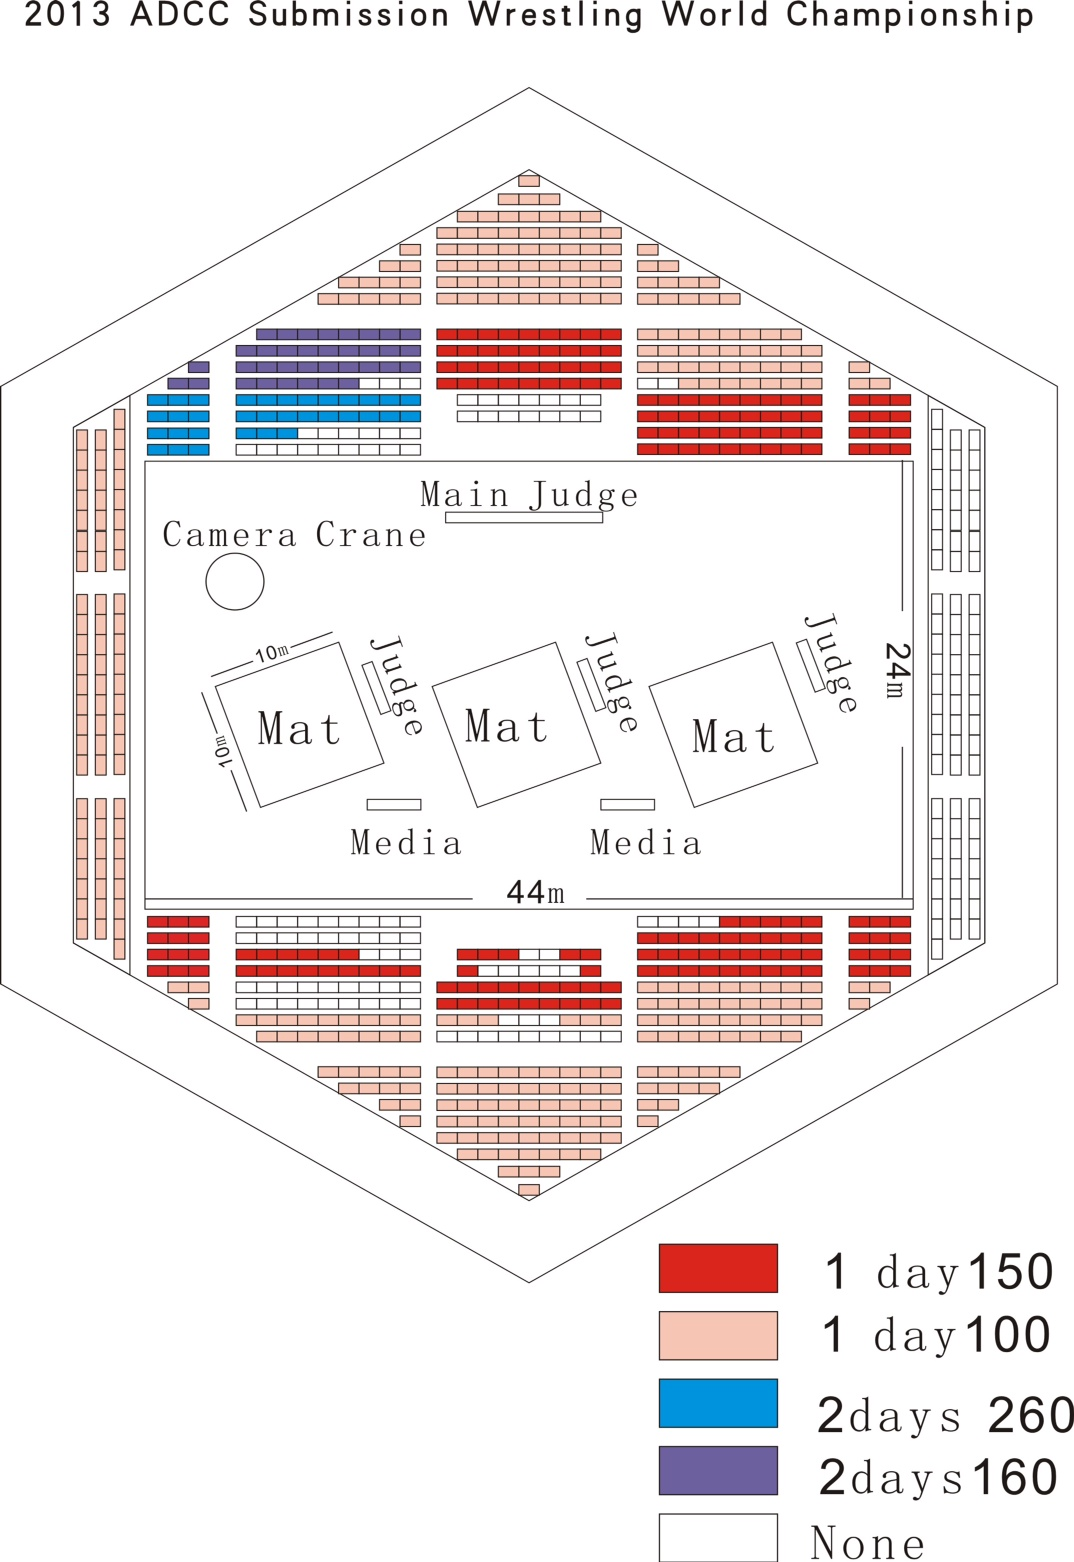 ADCC Venue in China 2013. Click on the image to enlarge.